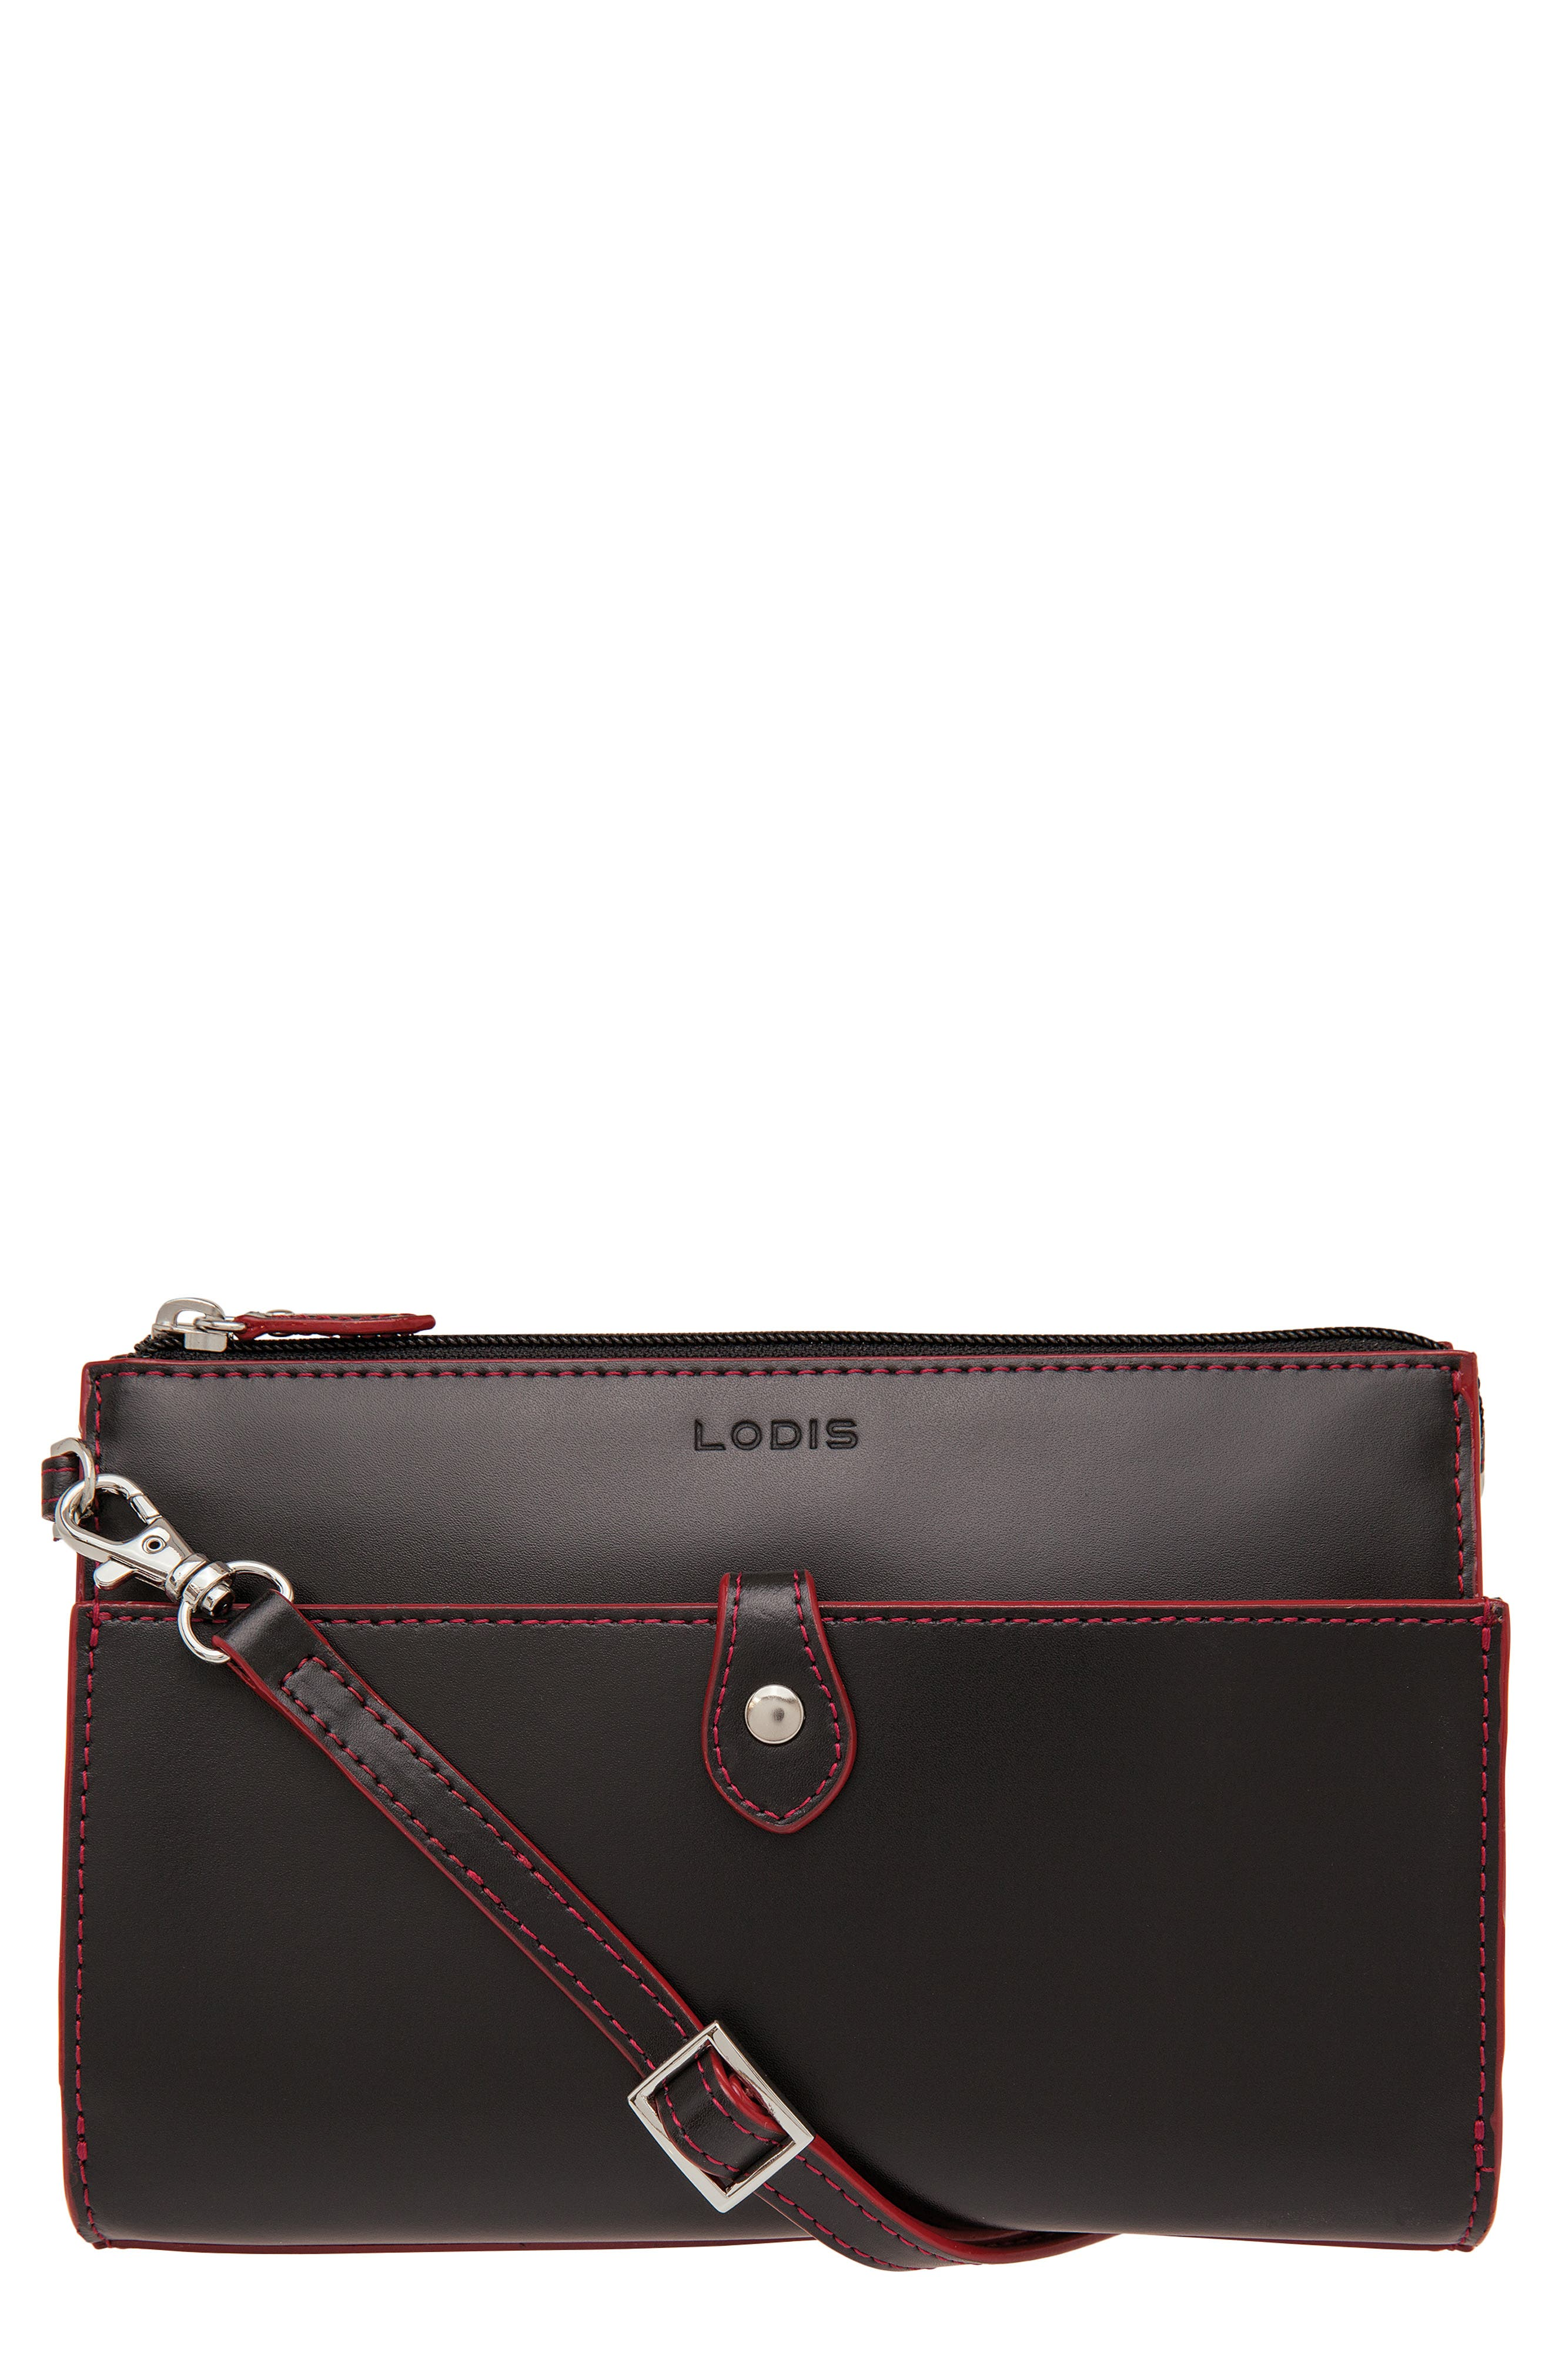 Audrey Under Lock & Key Vicky Convertible Leather Crossbody Bag,                             Main thumbnail 1, color,                             001